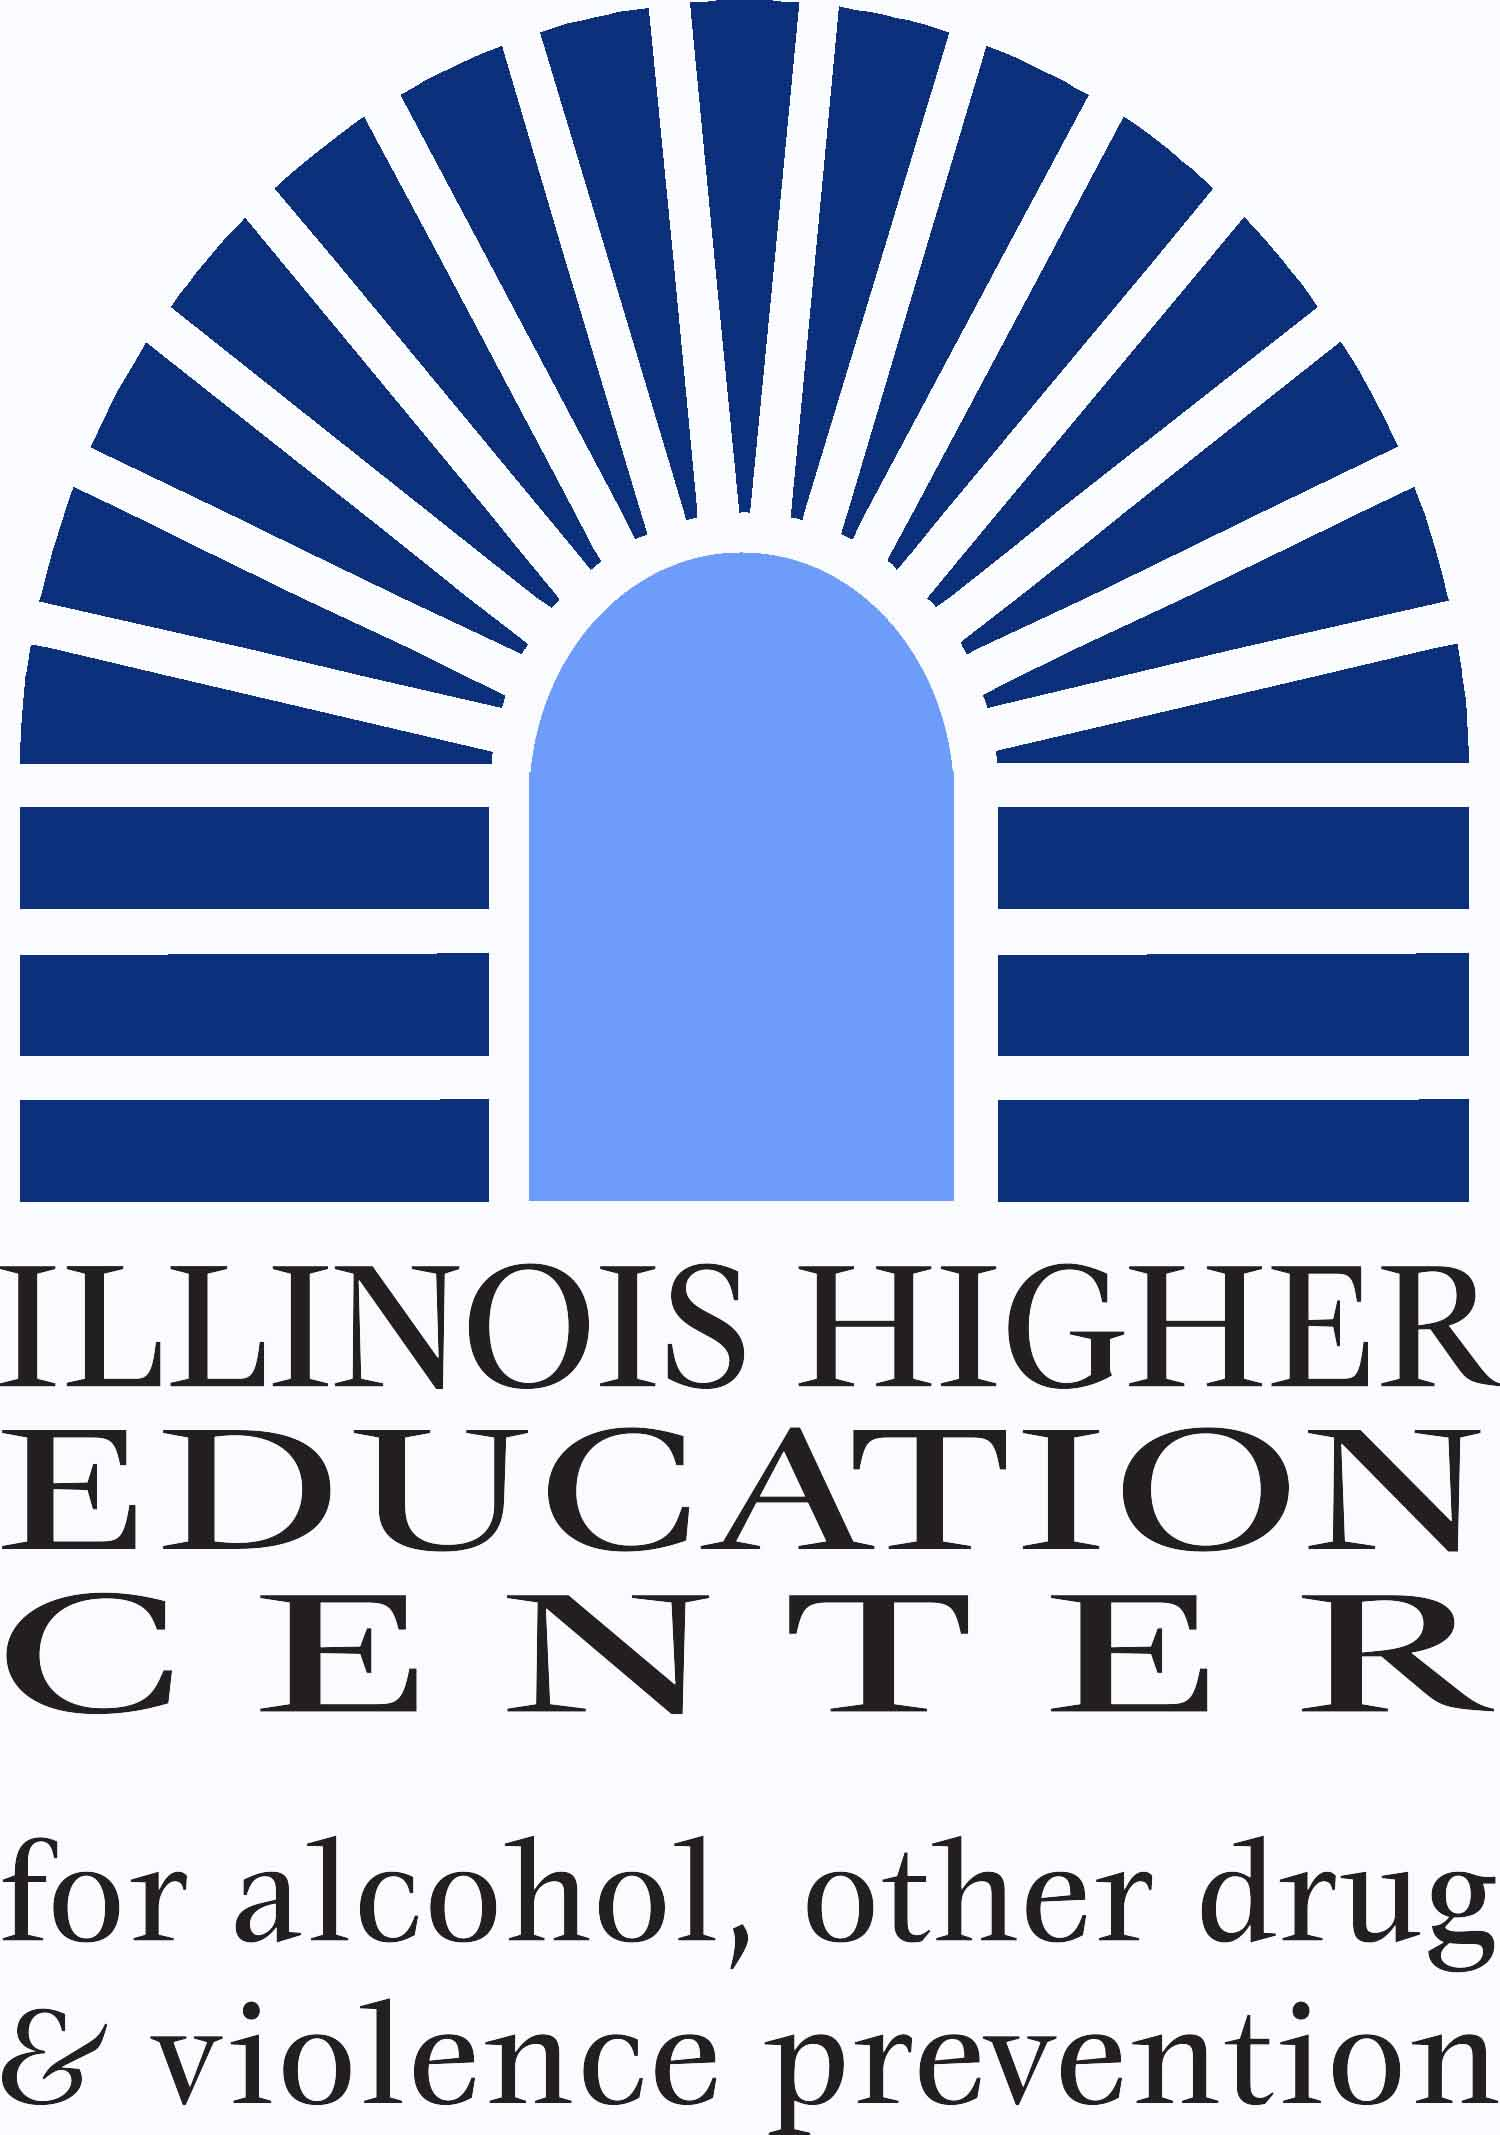 Illinois Higher Education Center